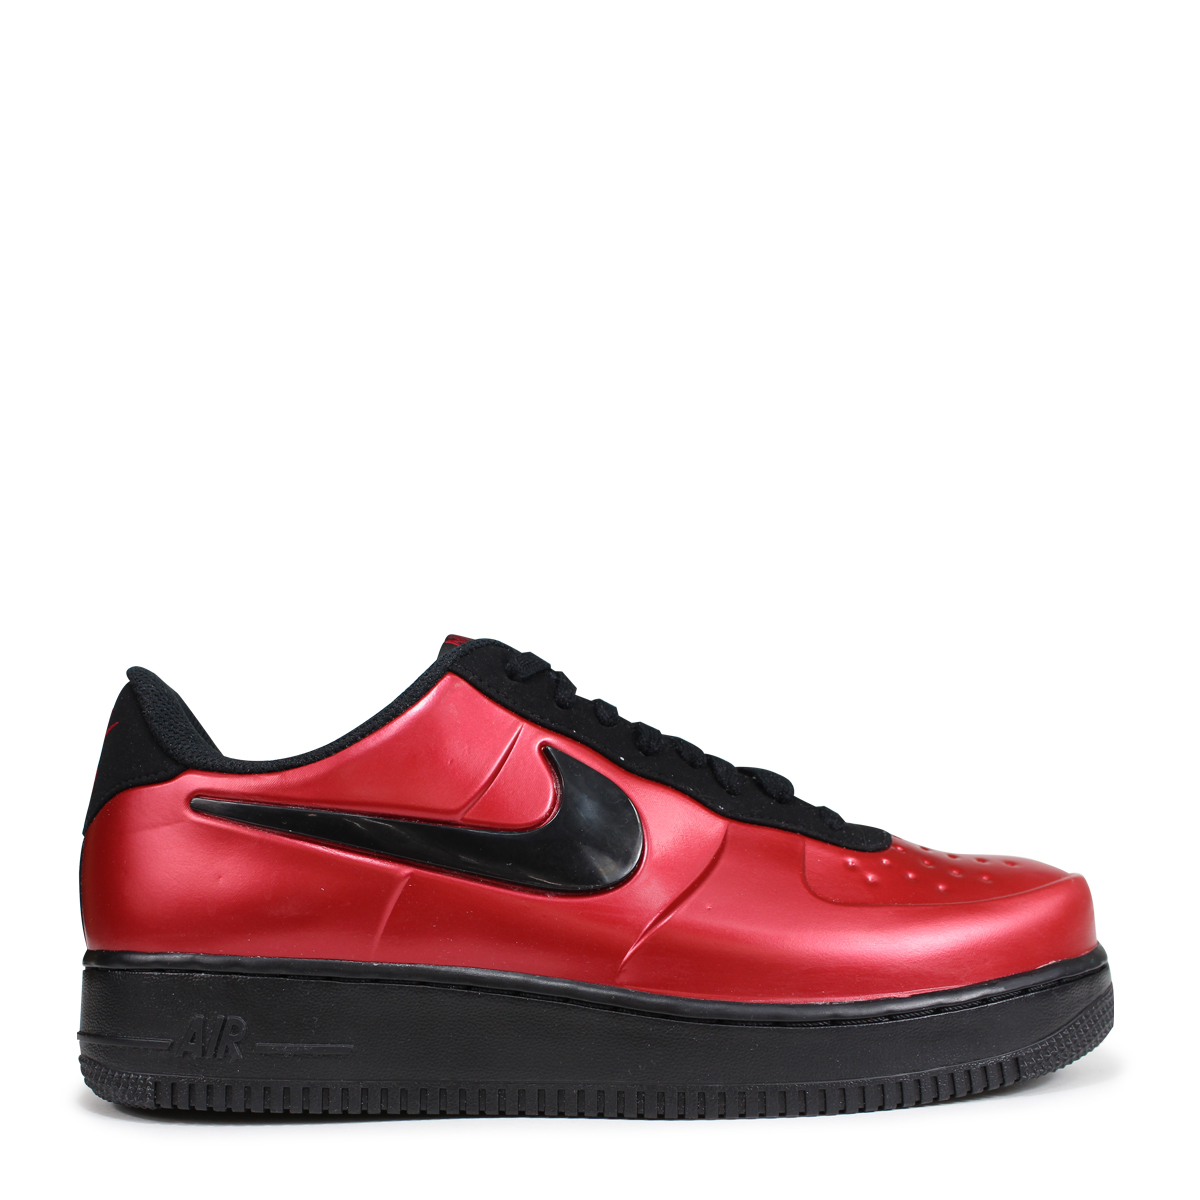 449124c64980d ALLSPORTS  NIKE AIR FORCE 1 FOAMPOSITE PRO CUP AF1 Nike air force 1 ...